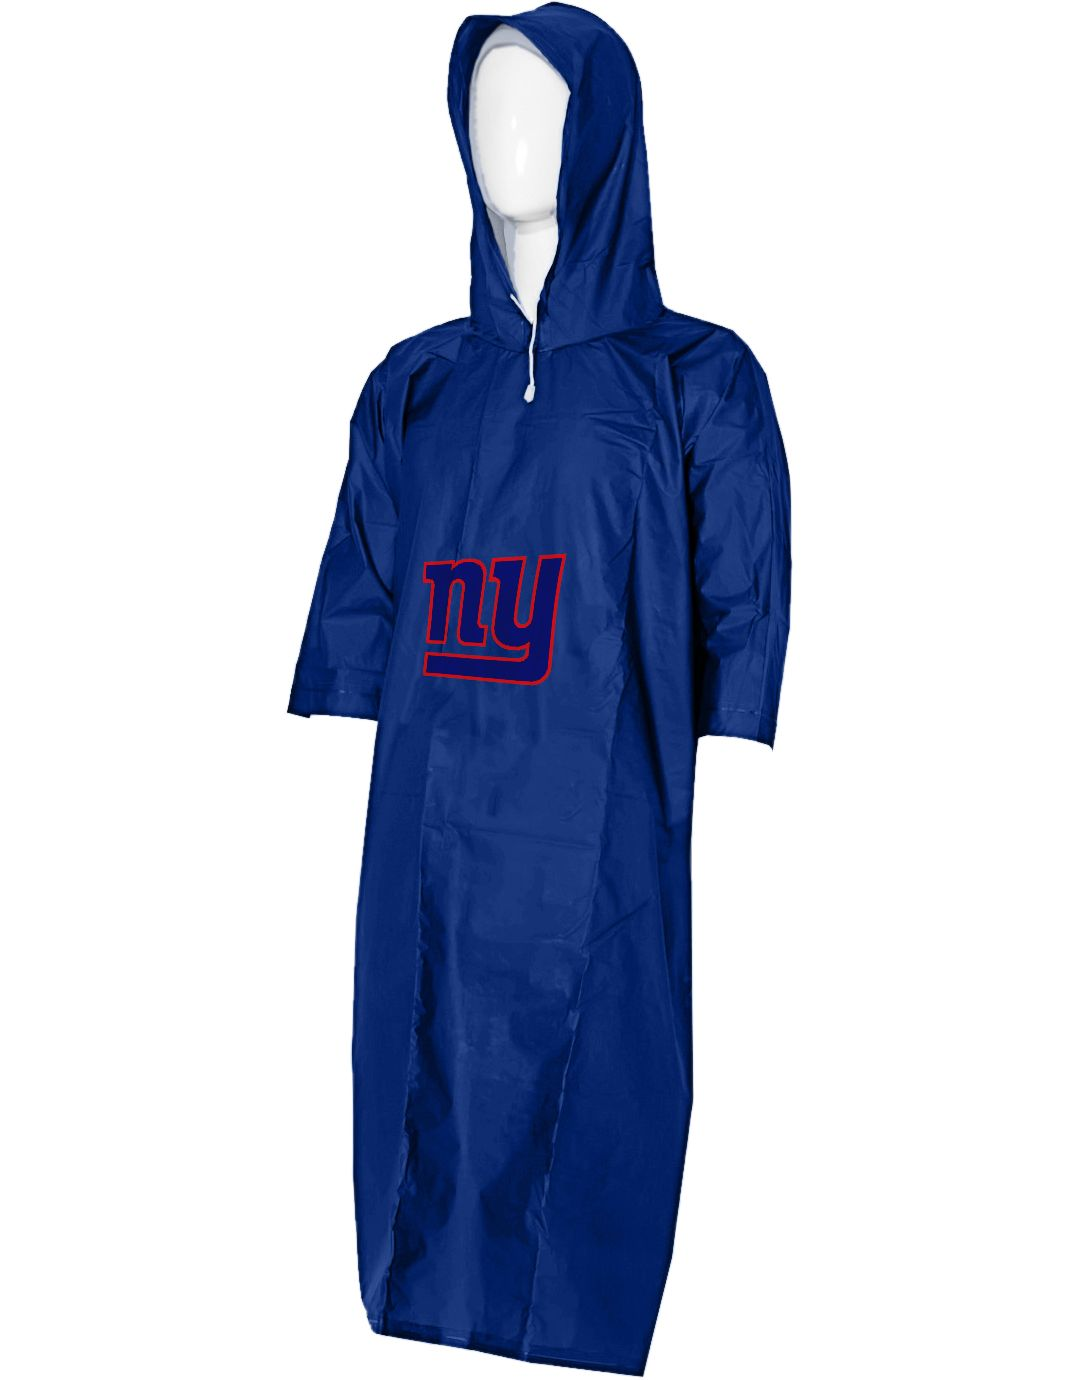 89b619d3 Northwest New York Giants Deluxe Poncho